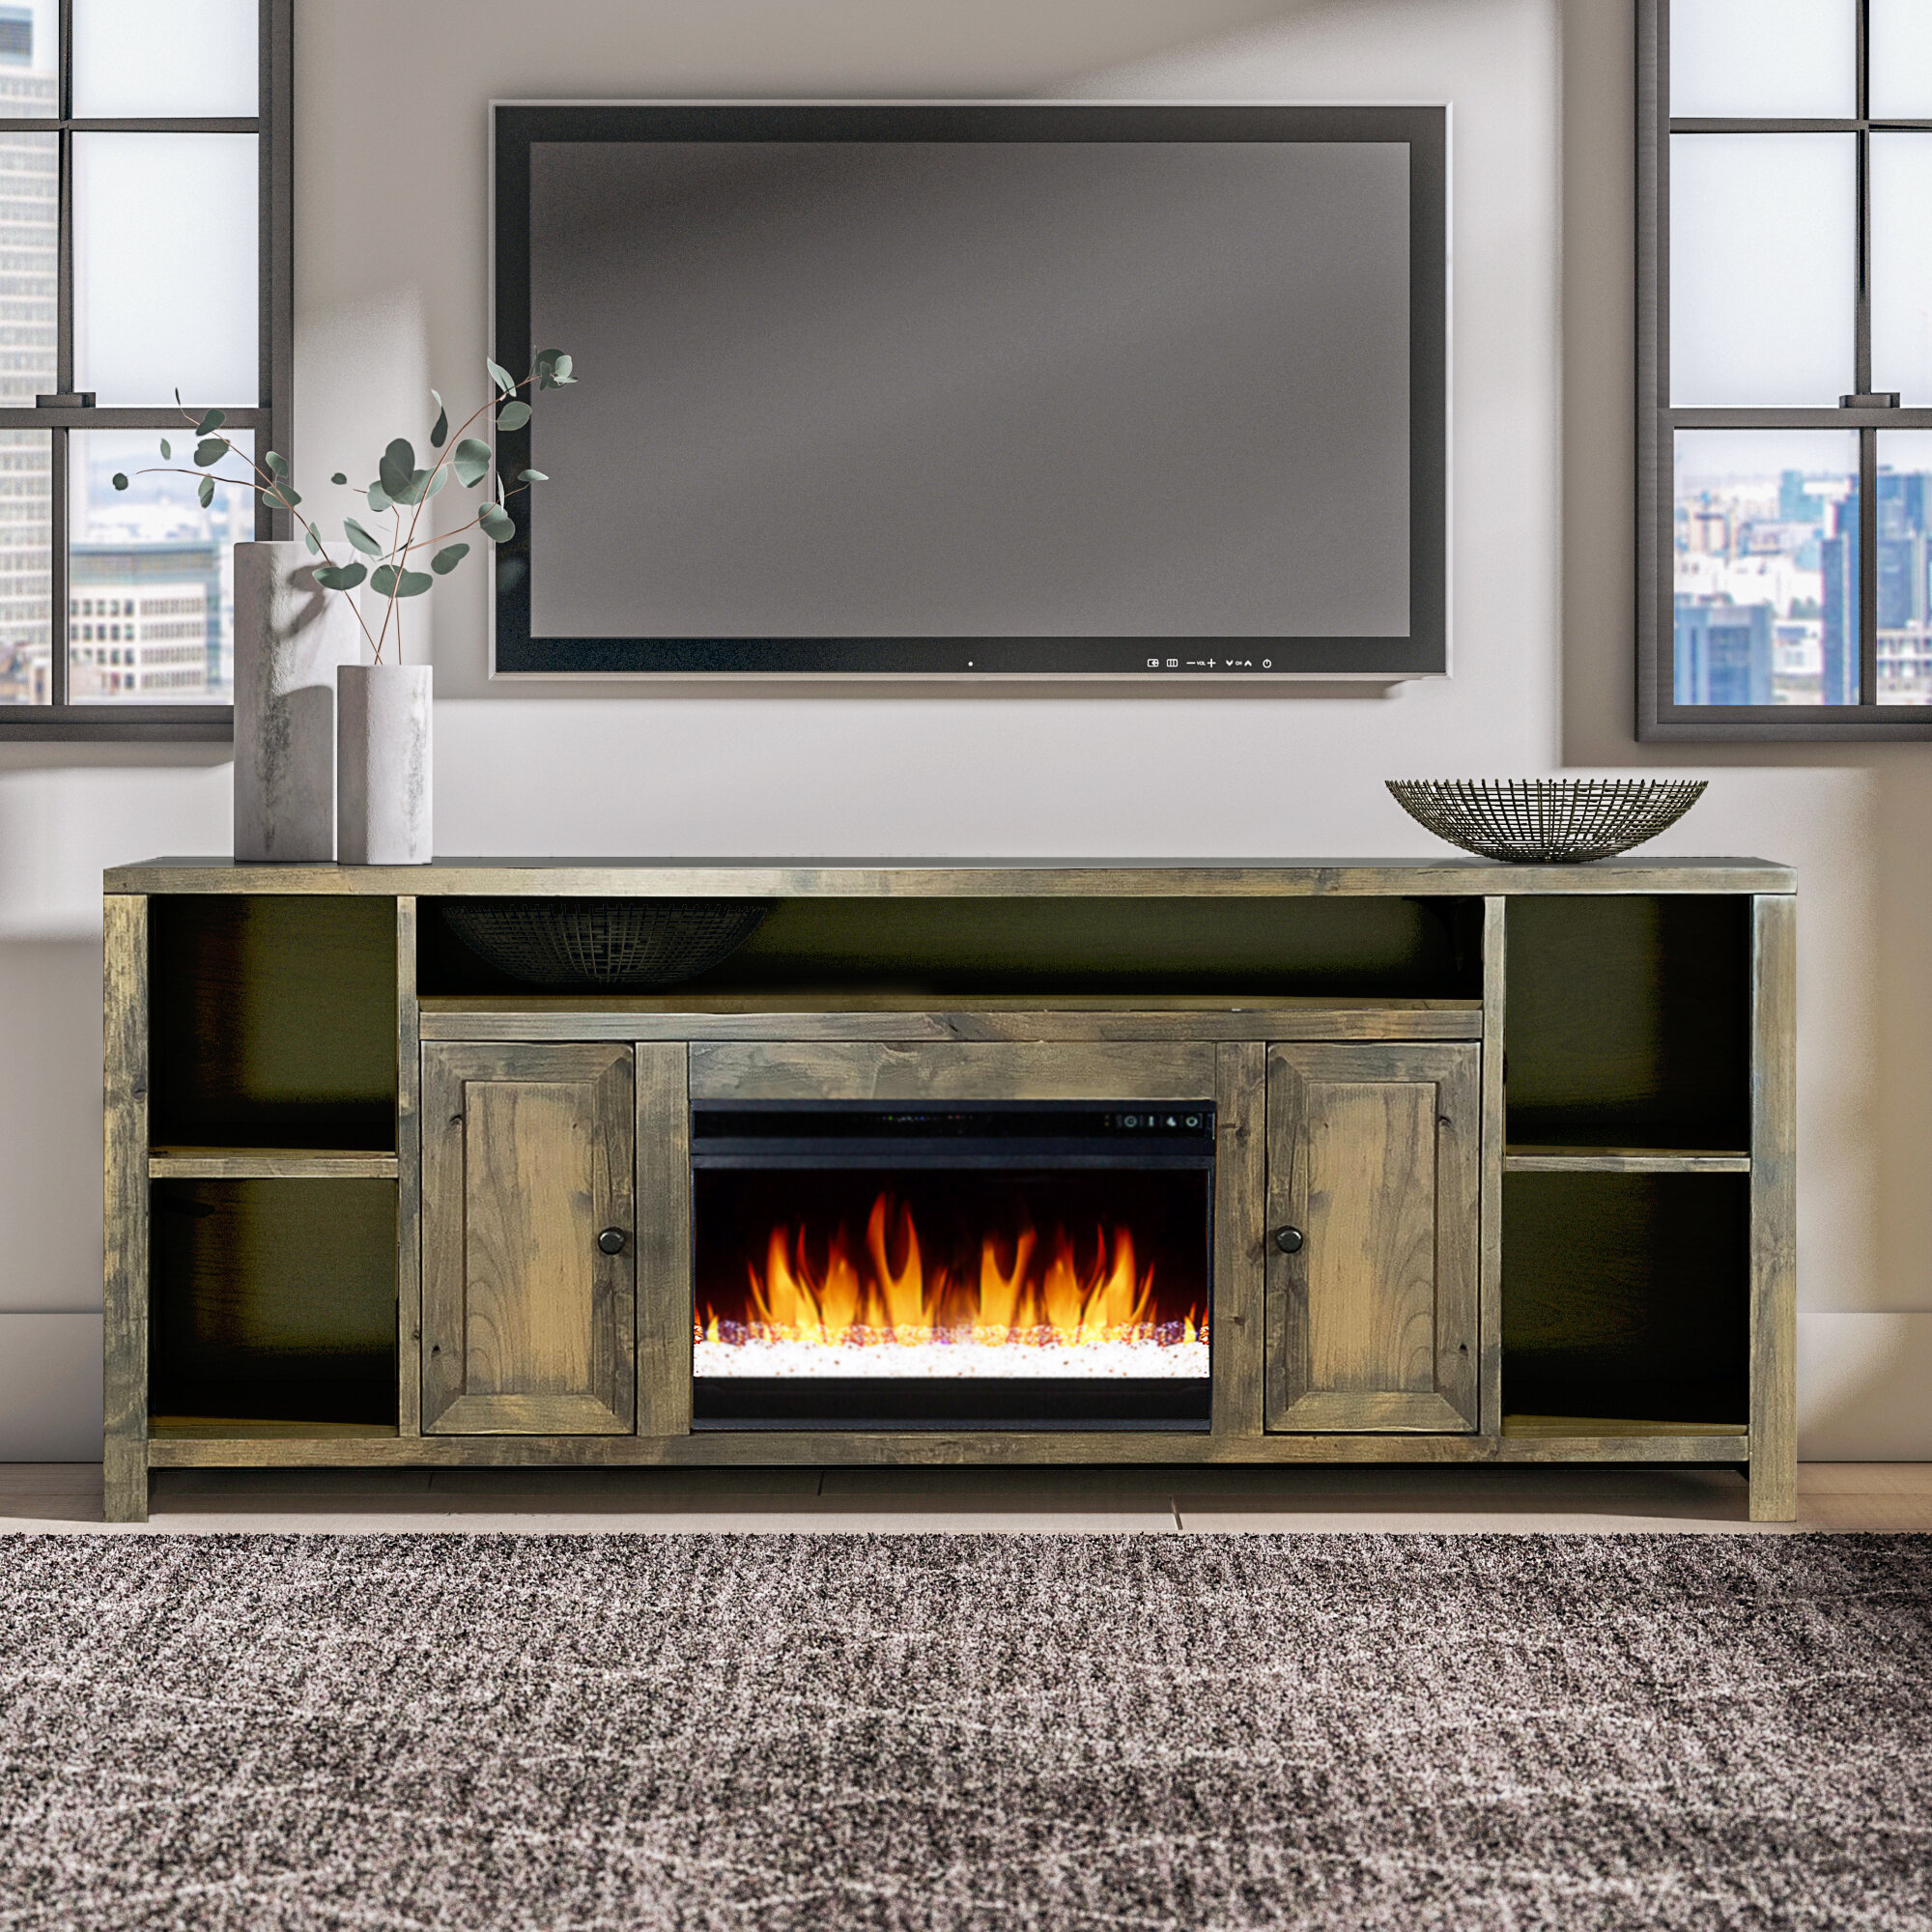 Greyleigh Columbia Tv Stand For Tvs Up To 88 With Electric Fireplace Included Reviews Wayfair